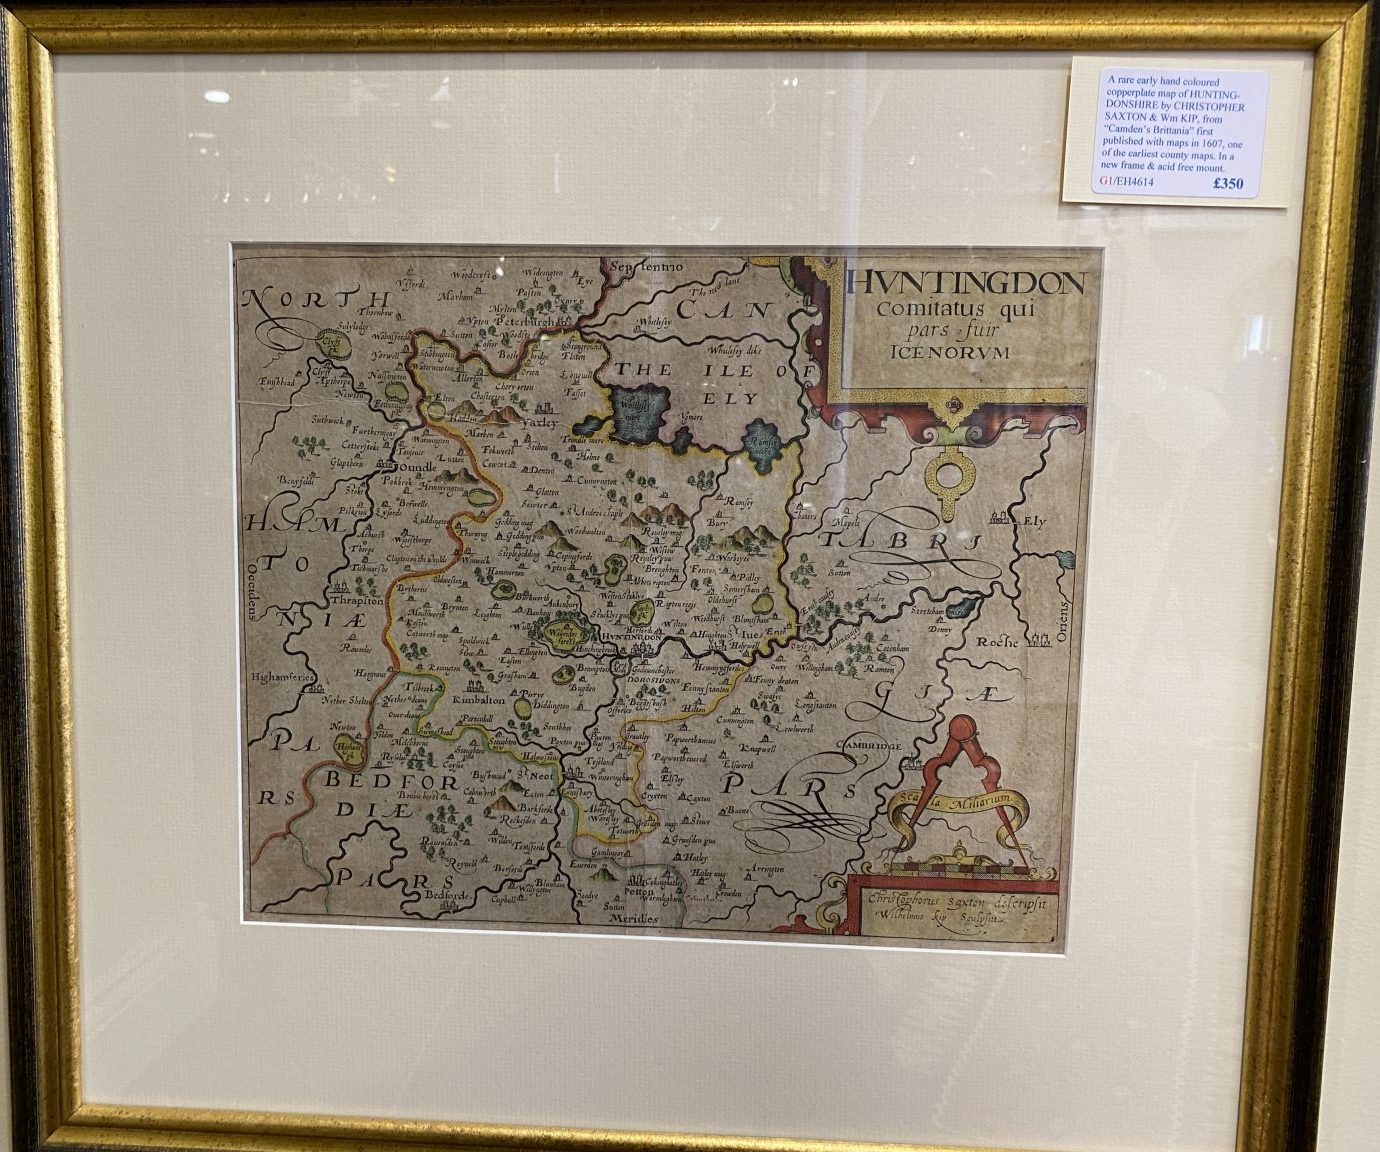 G1 - A rare early hand-coloured map of HUNTINGDONSHIRE by Christopher Saxton (1543-1610) & William Kip, from Camdens Britannia of 1607. In a new frame and acid free mount.  £350